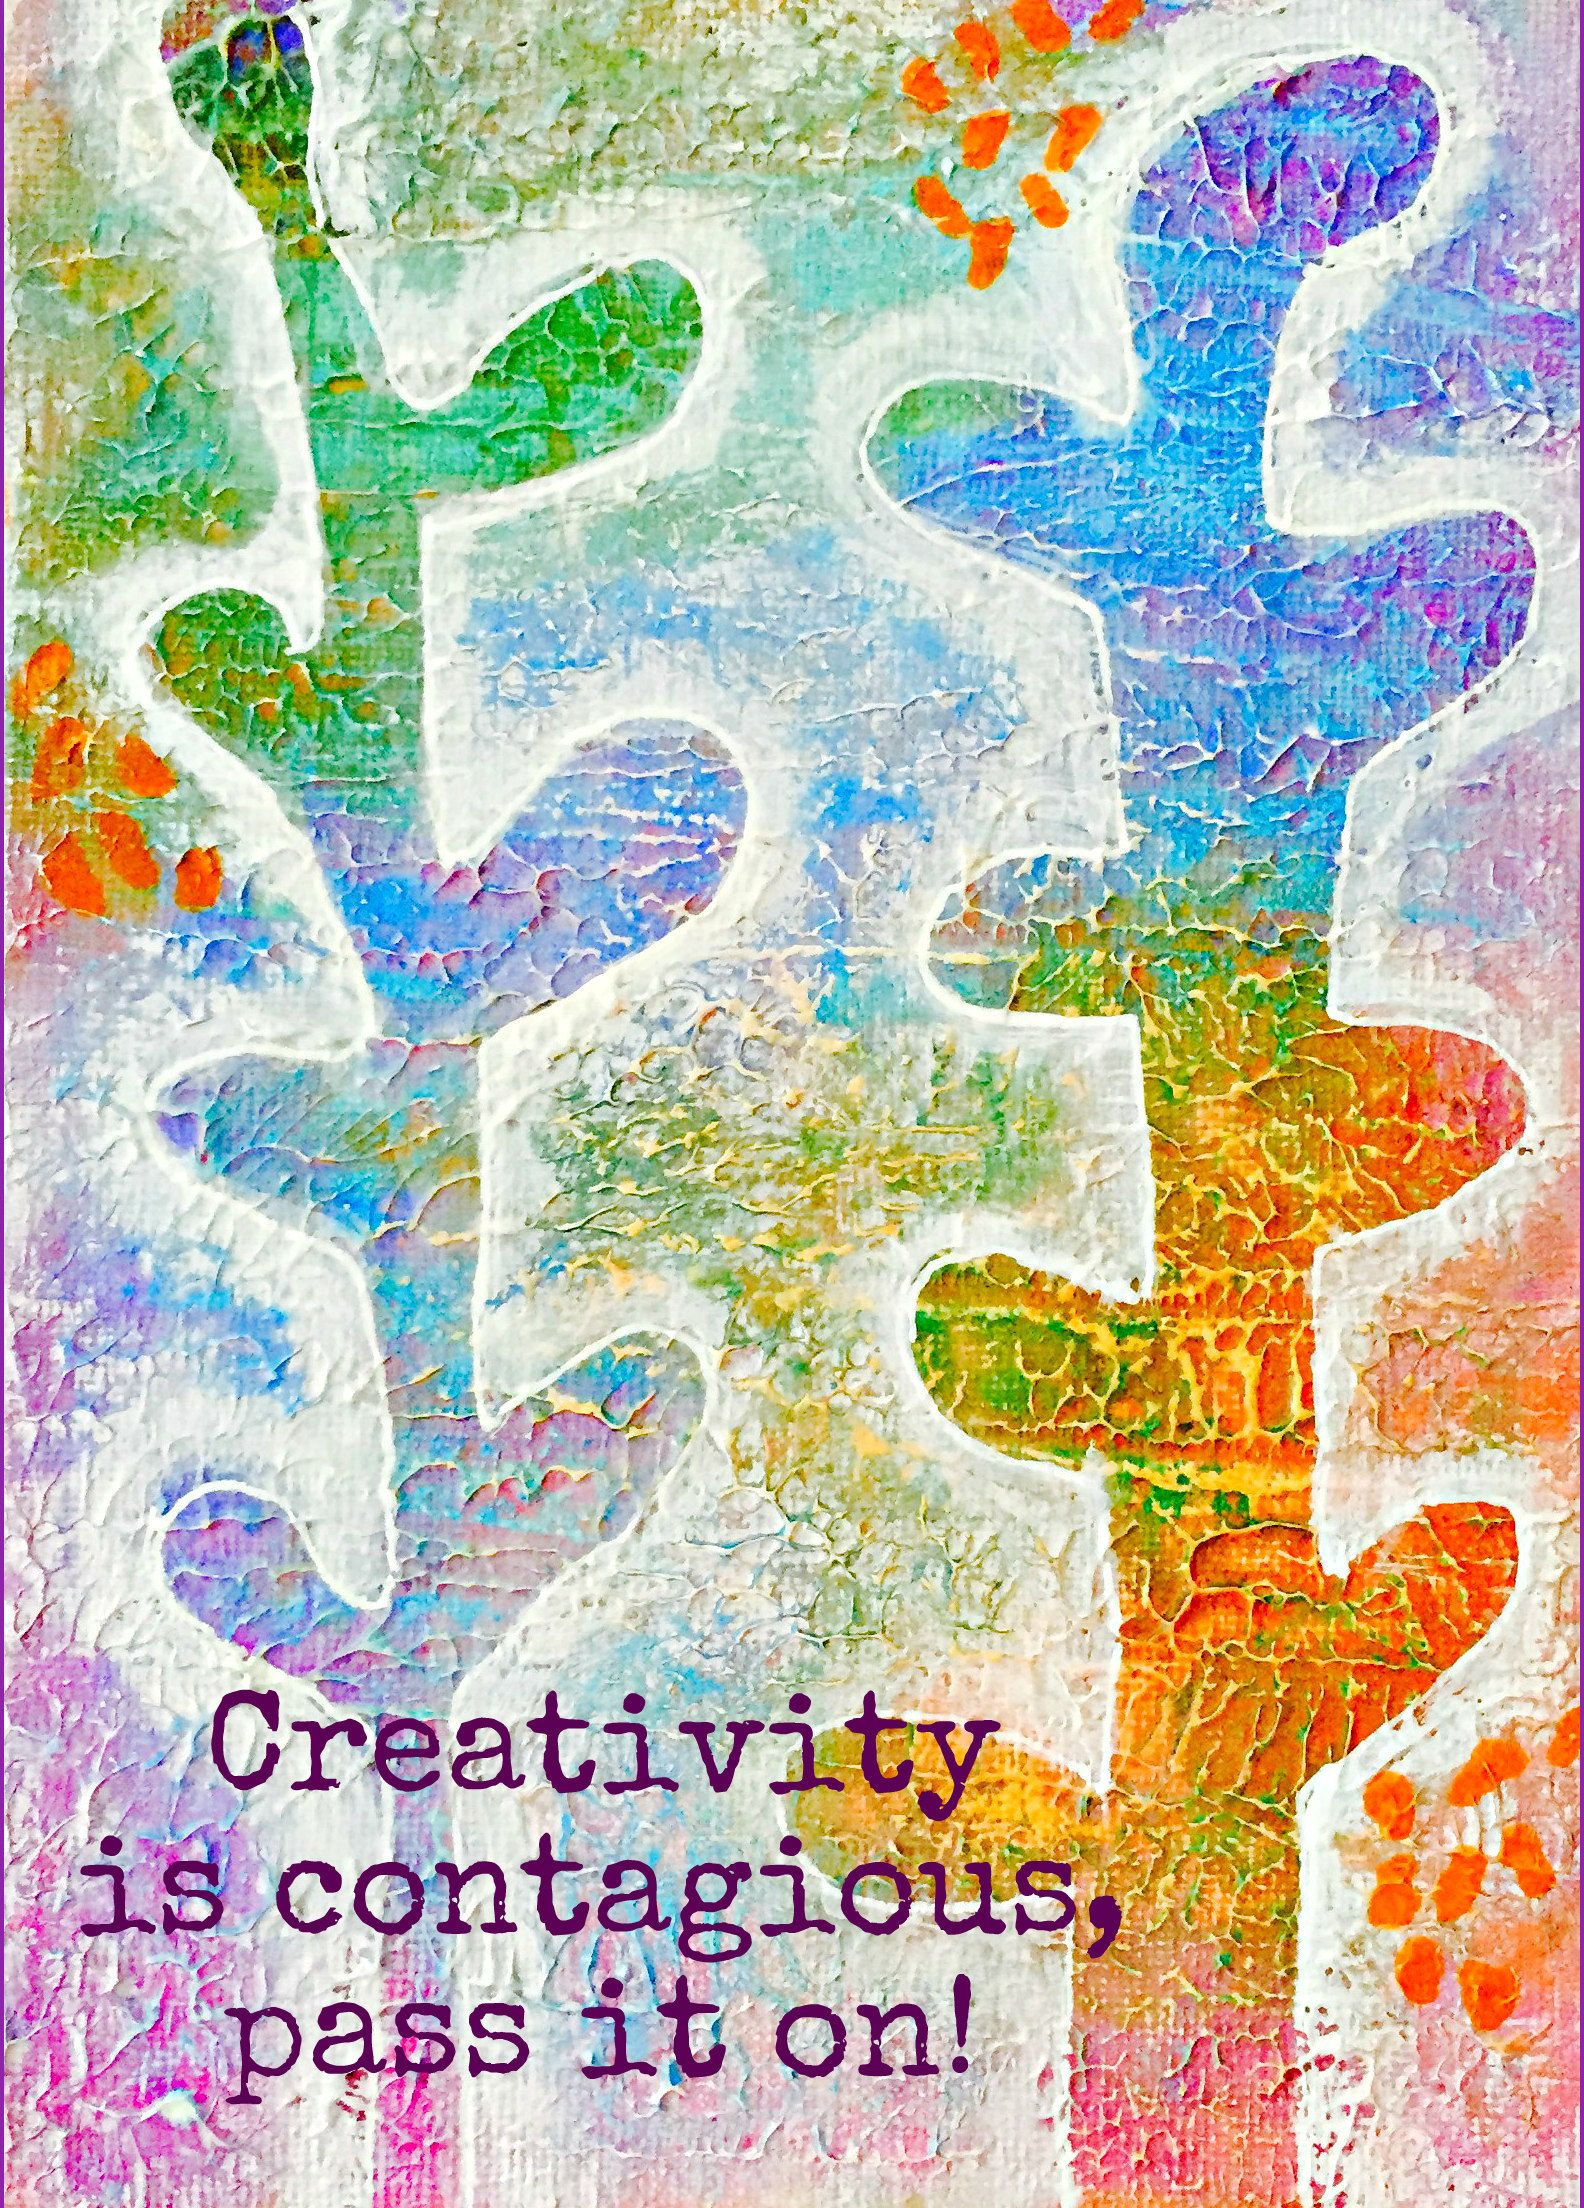 Stalks of Color by Shelley Graham Turner  #colors  #colorful #quote #creativity #sgturnerart